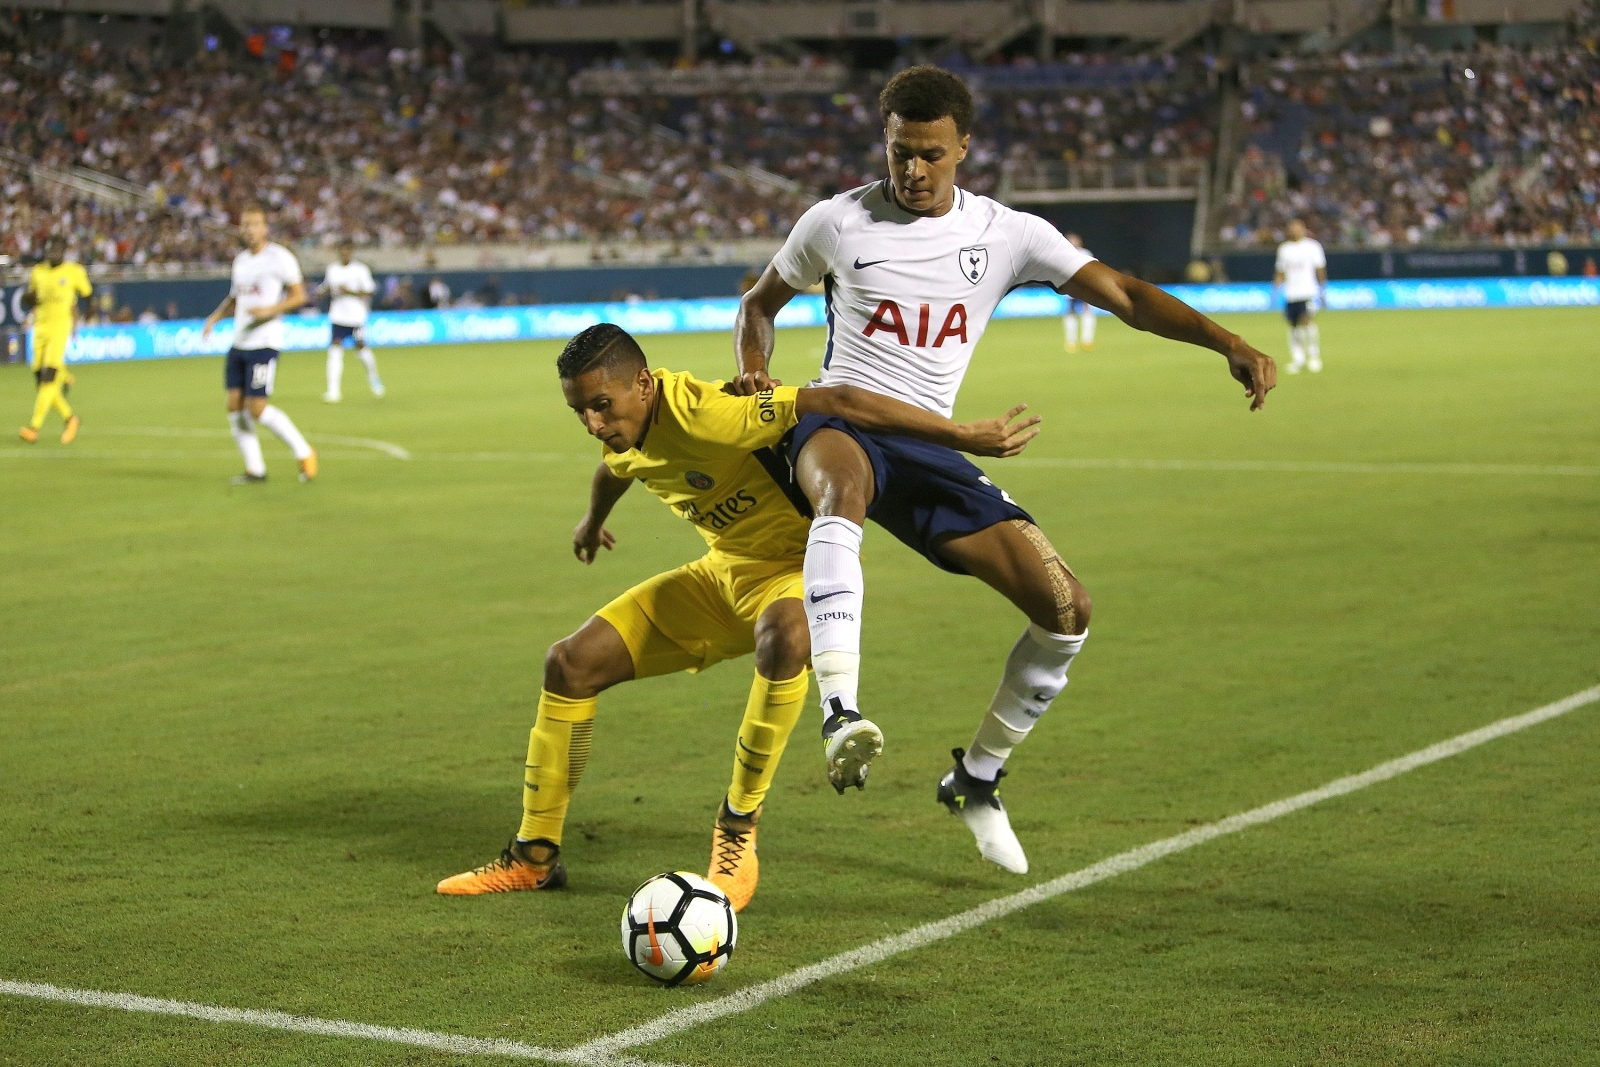 Dele Alli insists Tottenham need 'one or two players' to sustain title bid